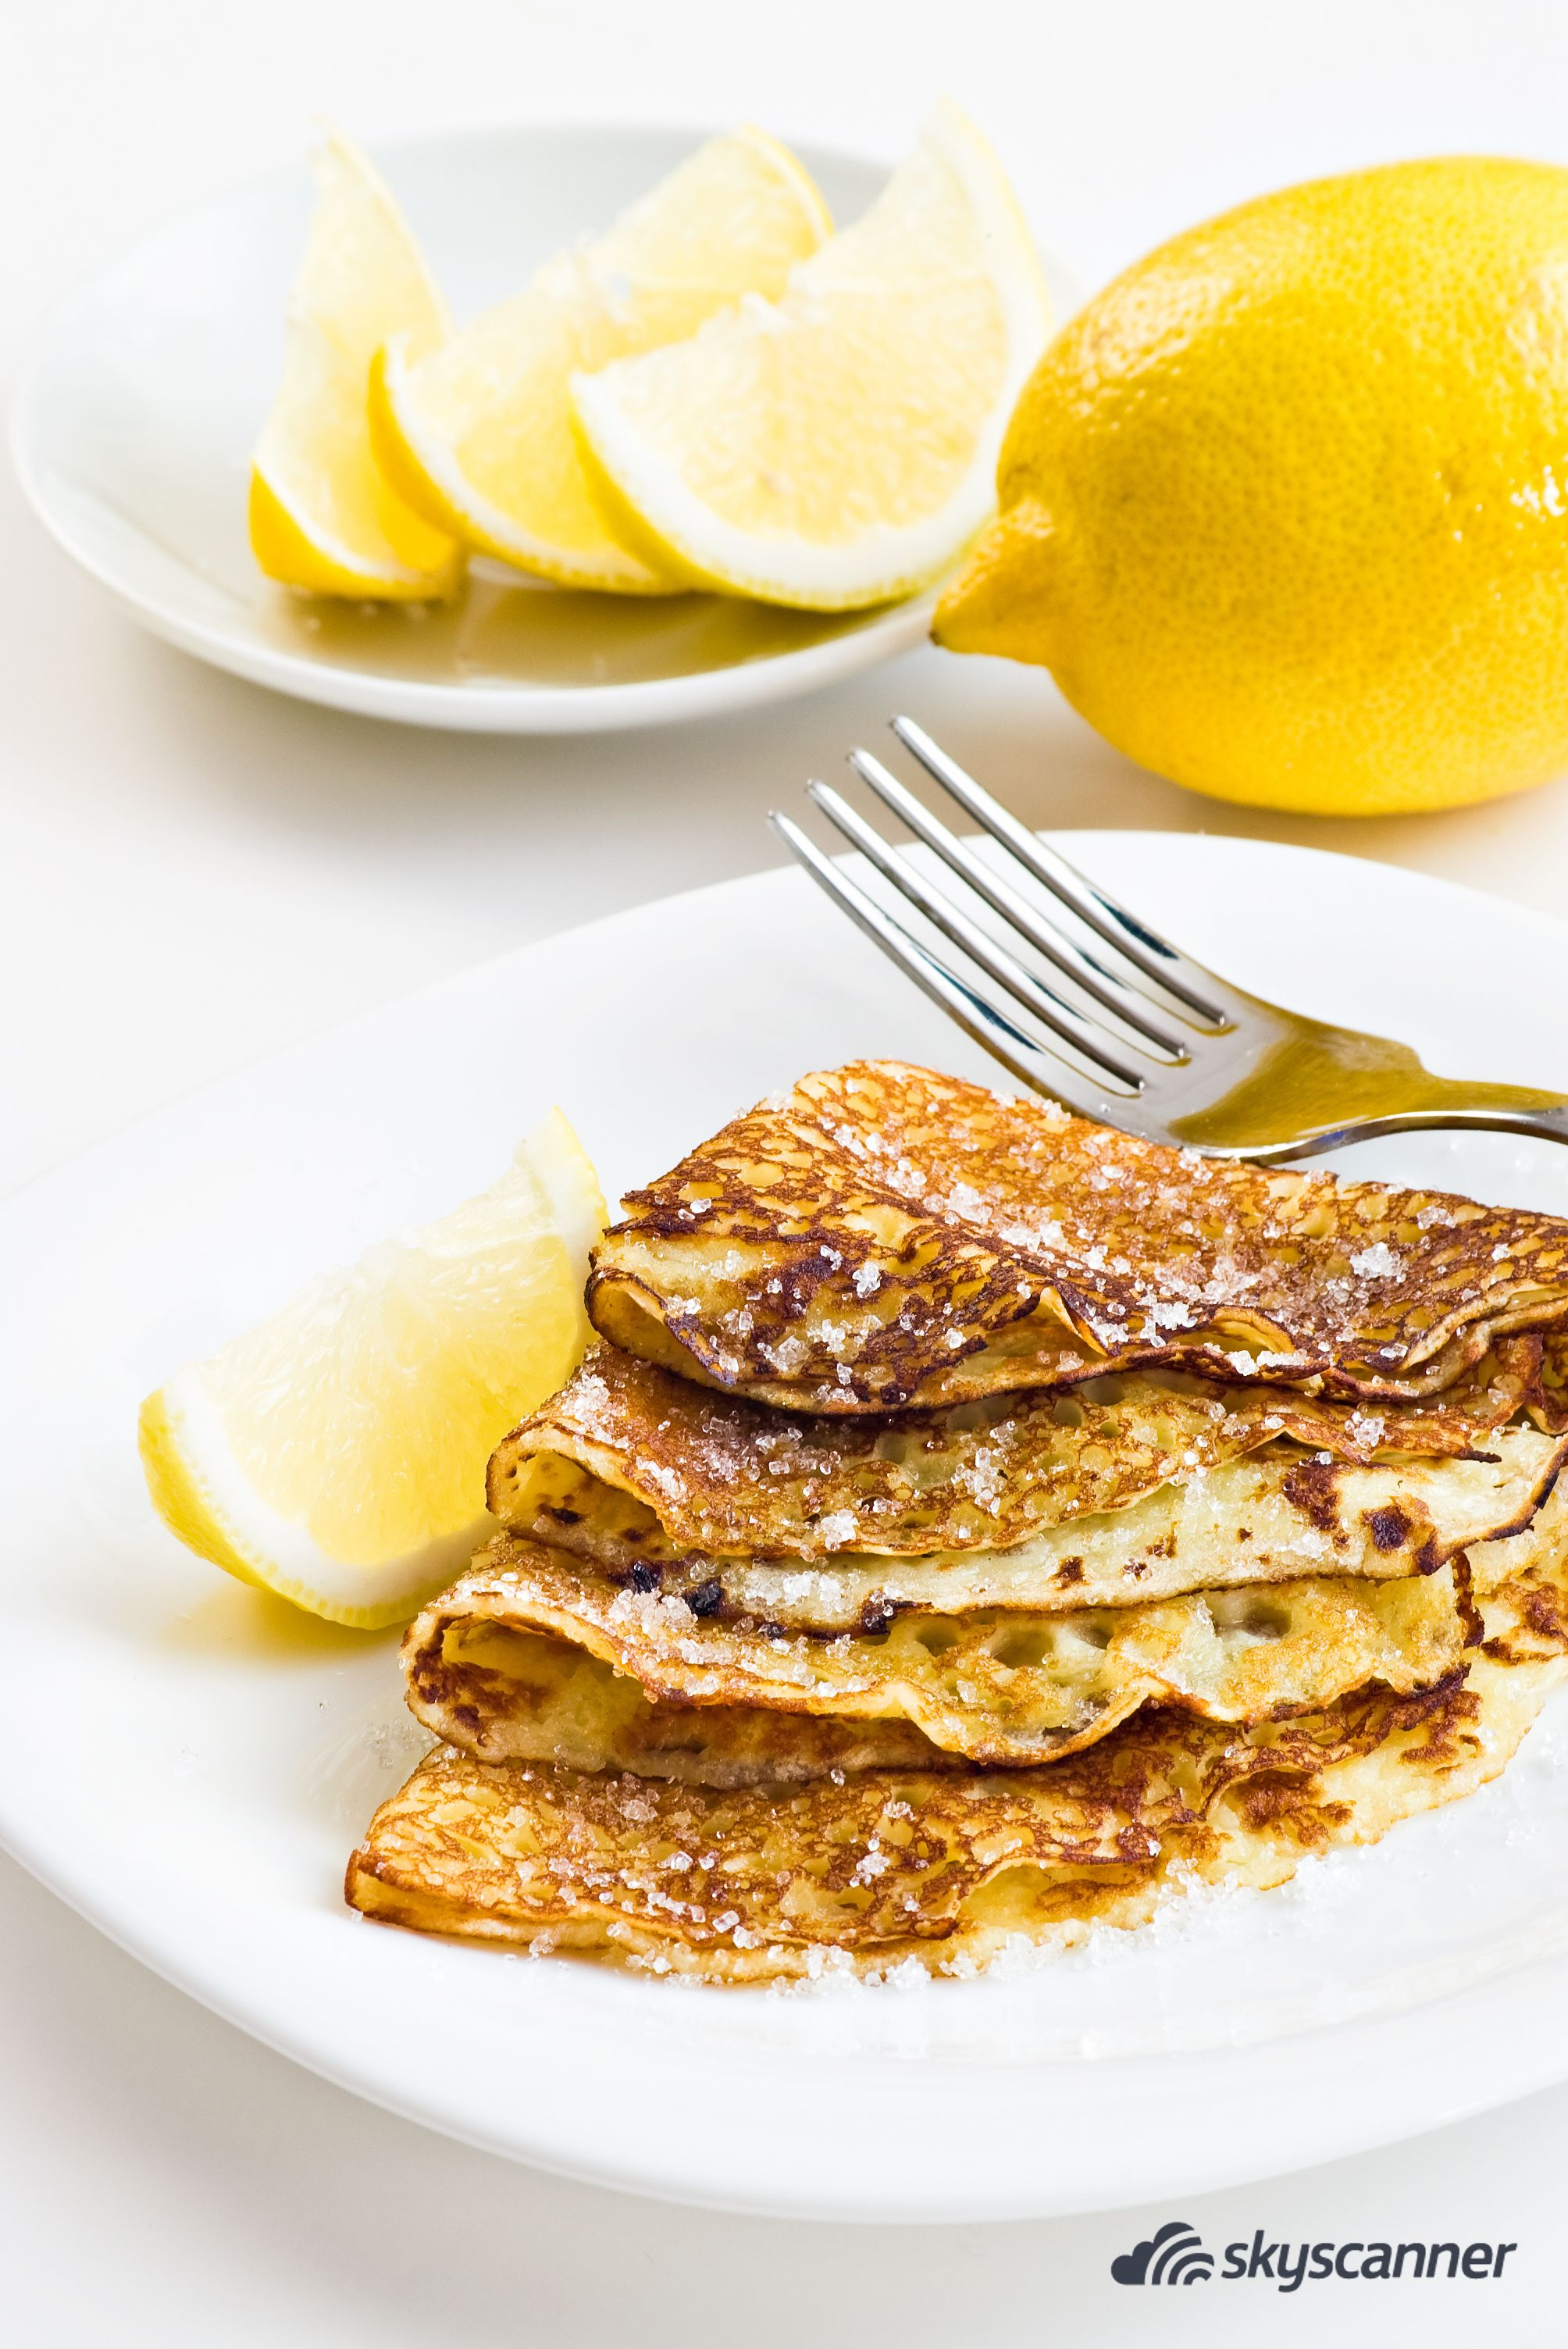 Want pancakes with cabbage and eggs